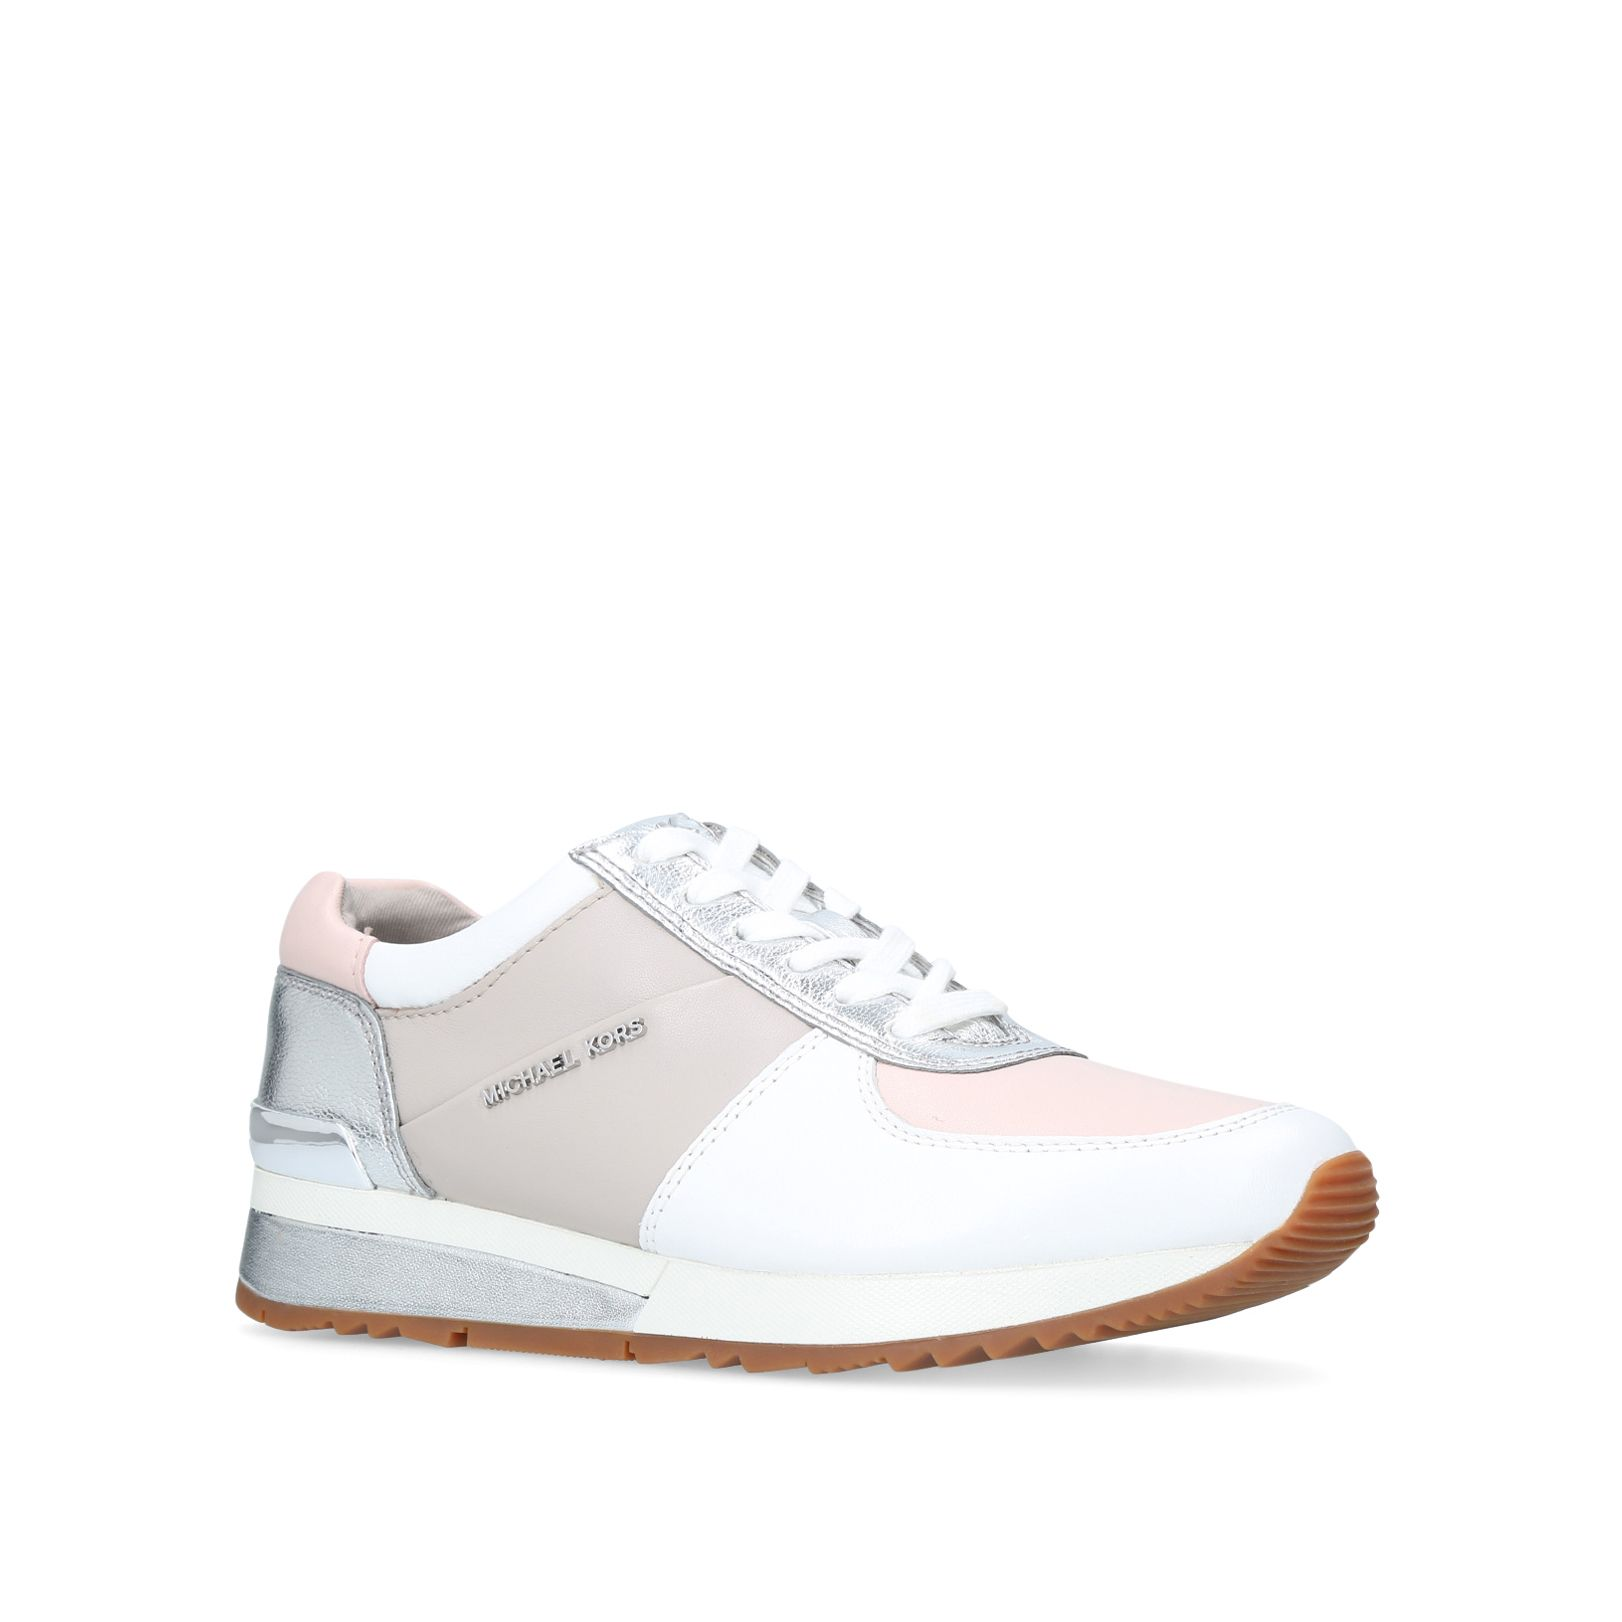 Michael Kors Allie Wrap Trainer Trainers, Pink